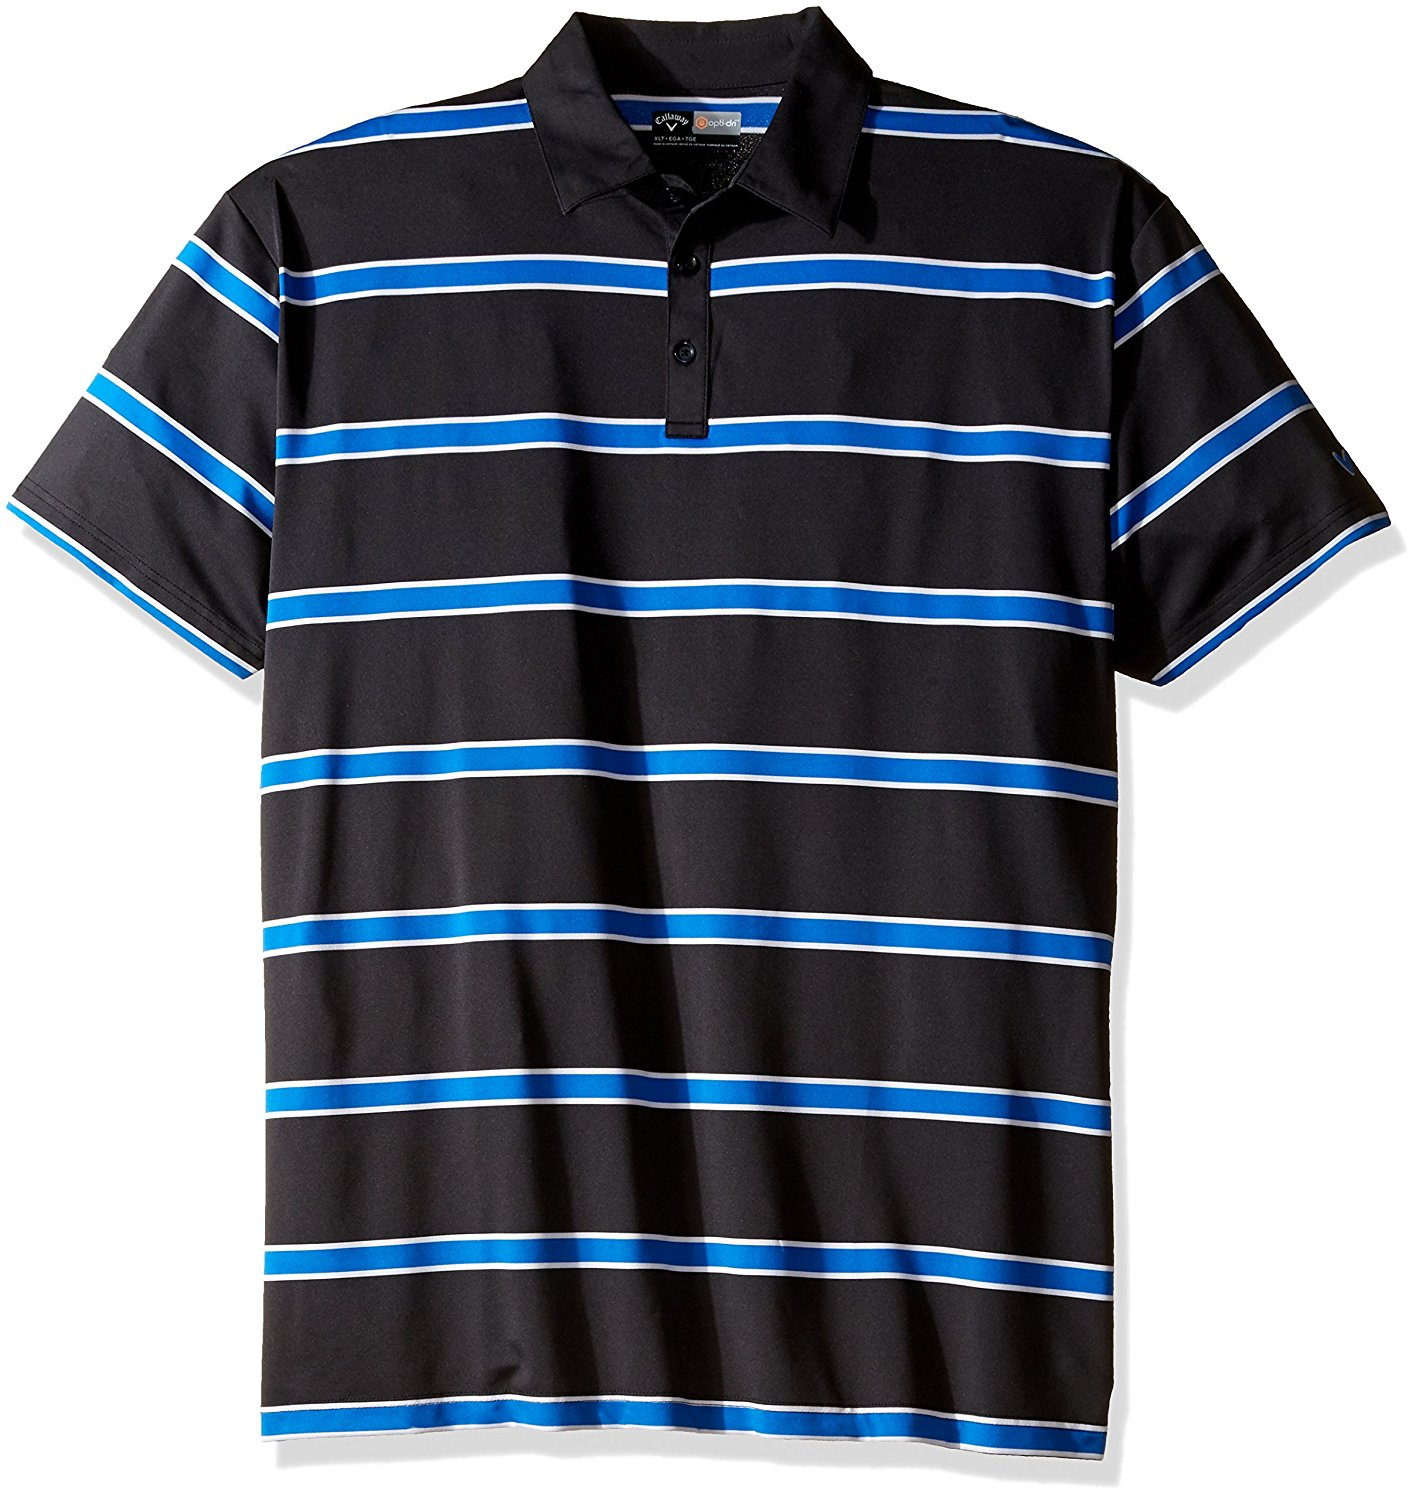 629853f124 Get Quotations · Callaway Men s Big   Tall Golf Performance Short Sleeve  Rugby Striped Polo Shirt